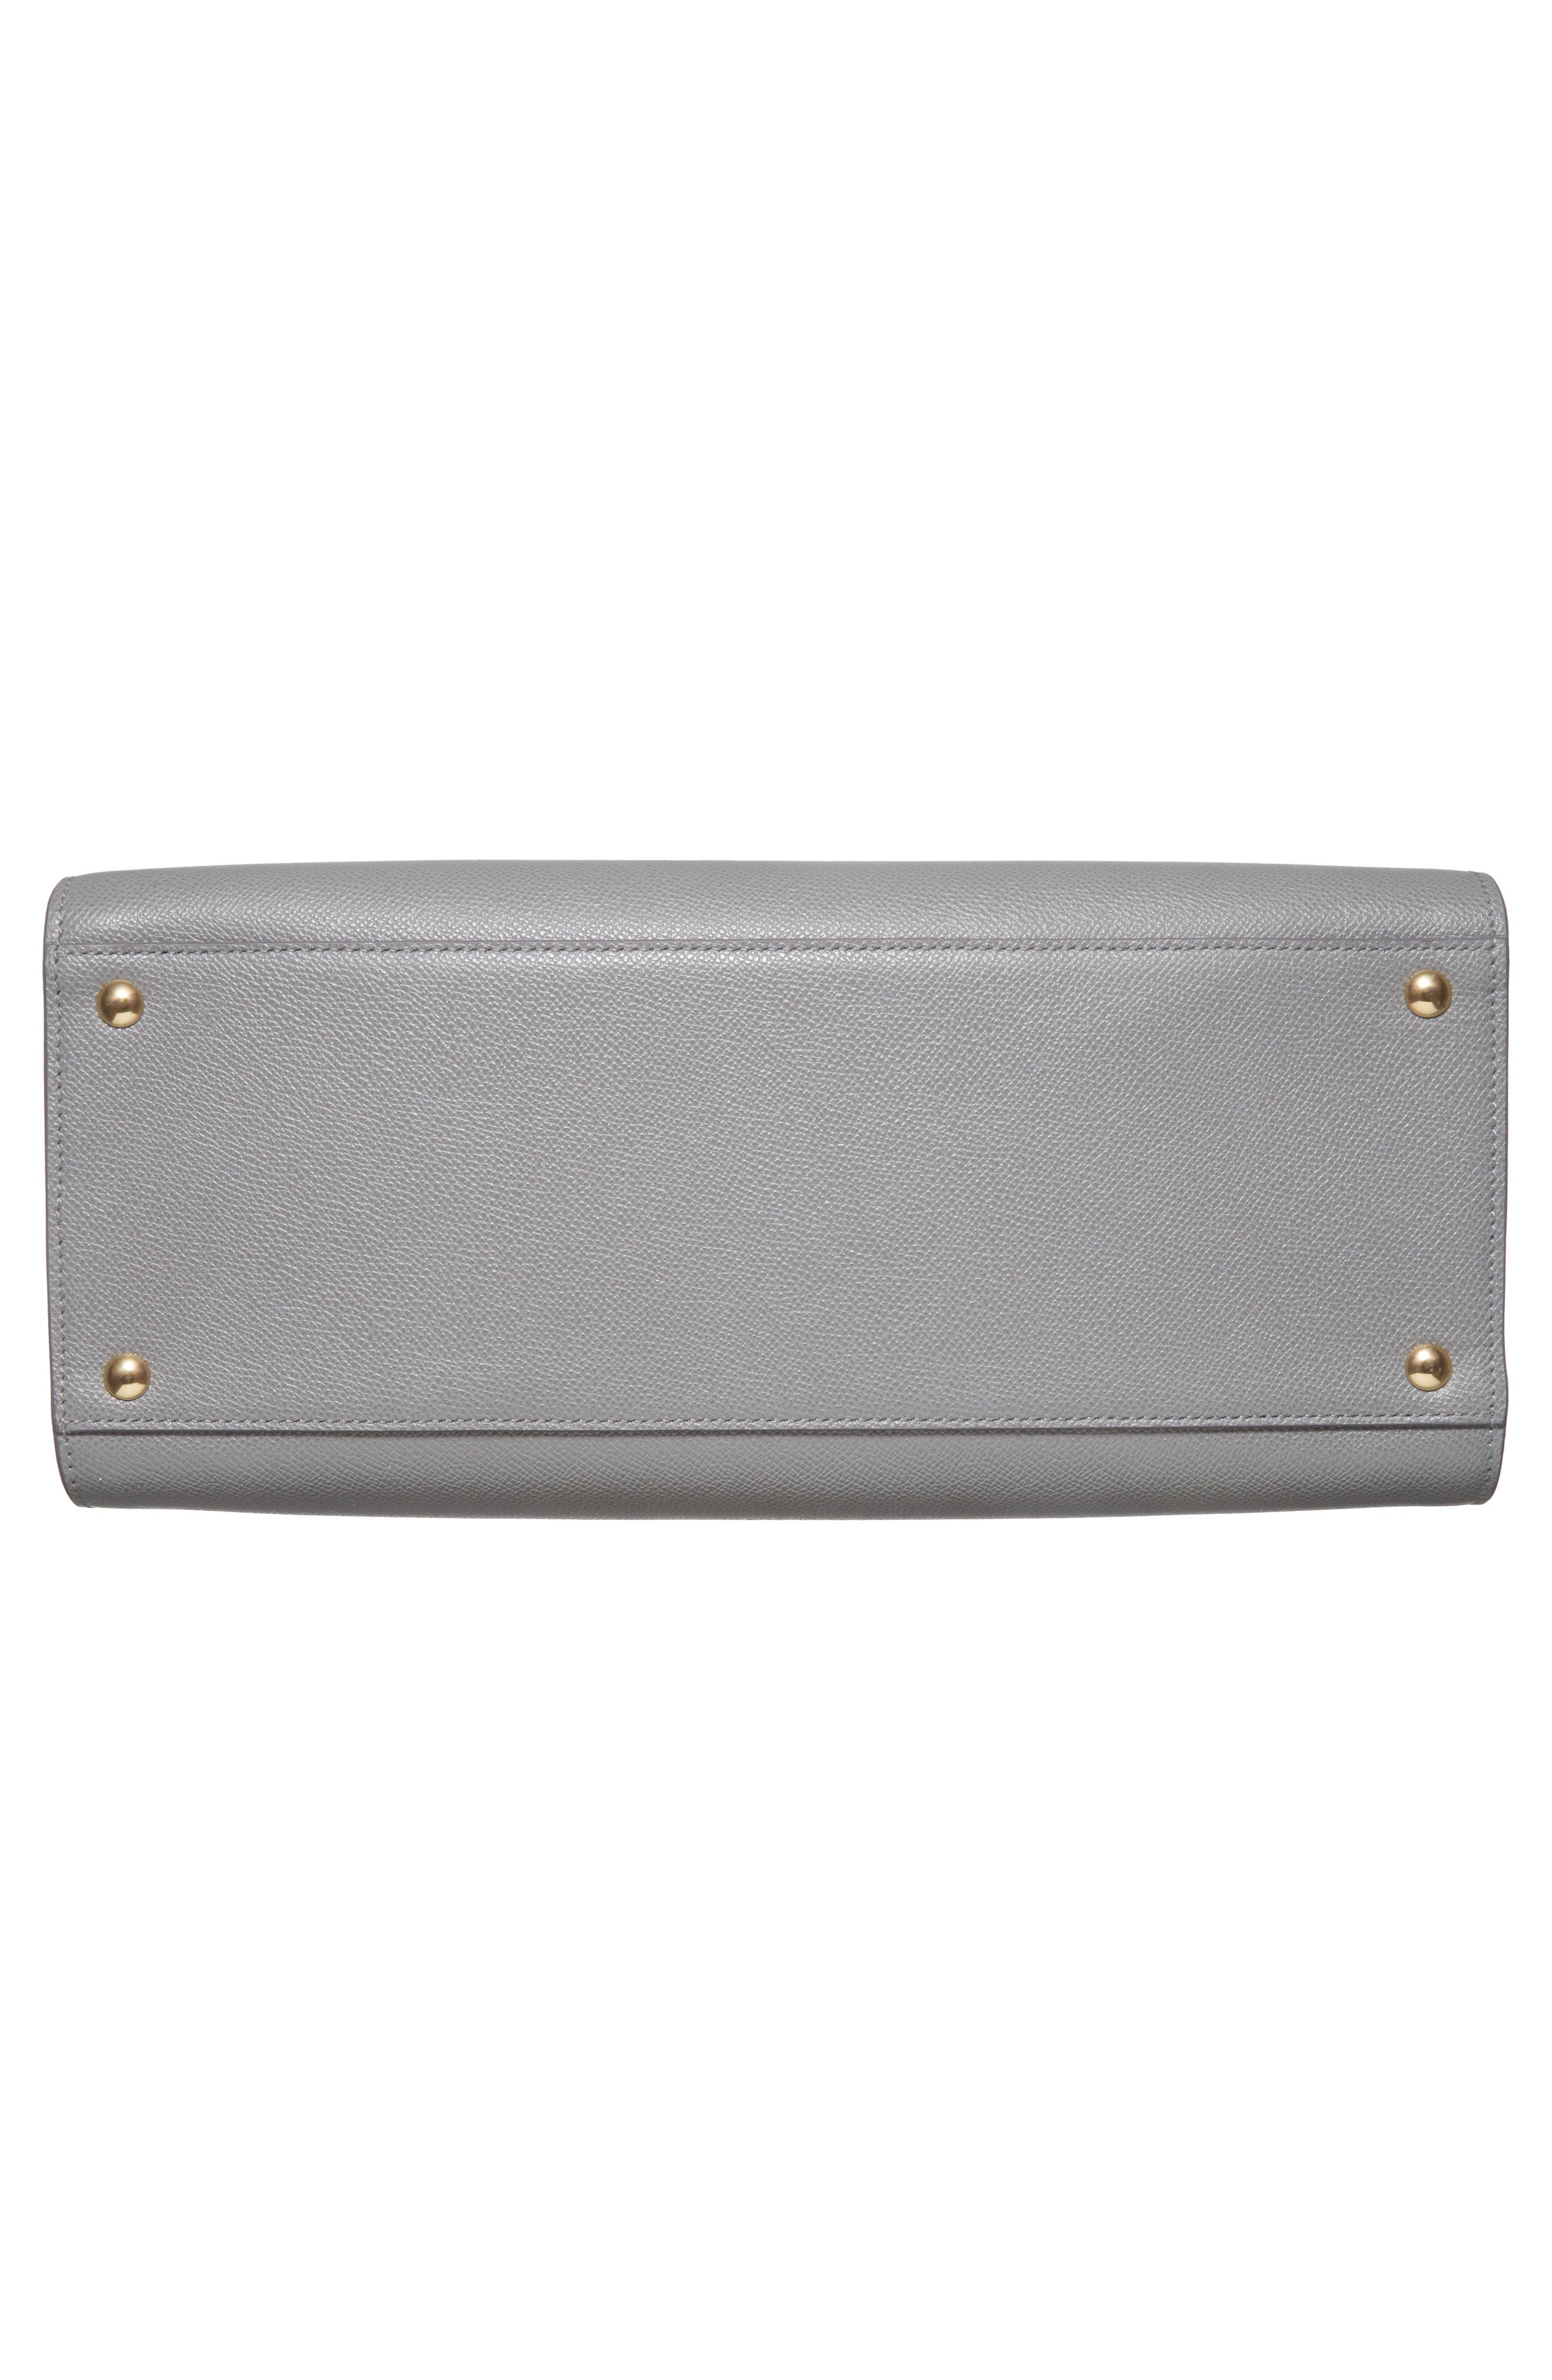 Small Today Leather Satchel,                             Alternate thumbnail 6, color,                             Fossil Grey